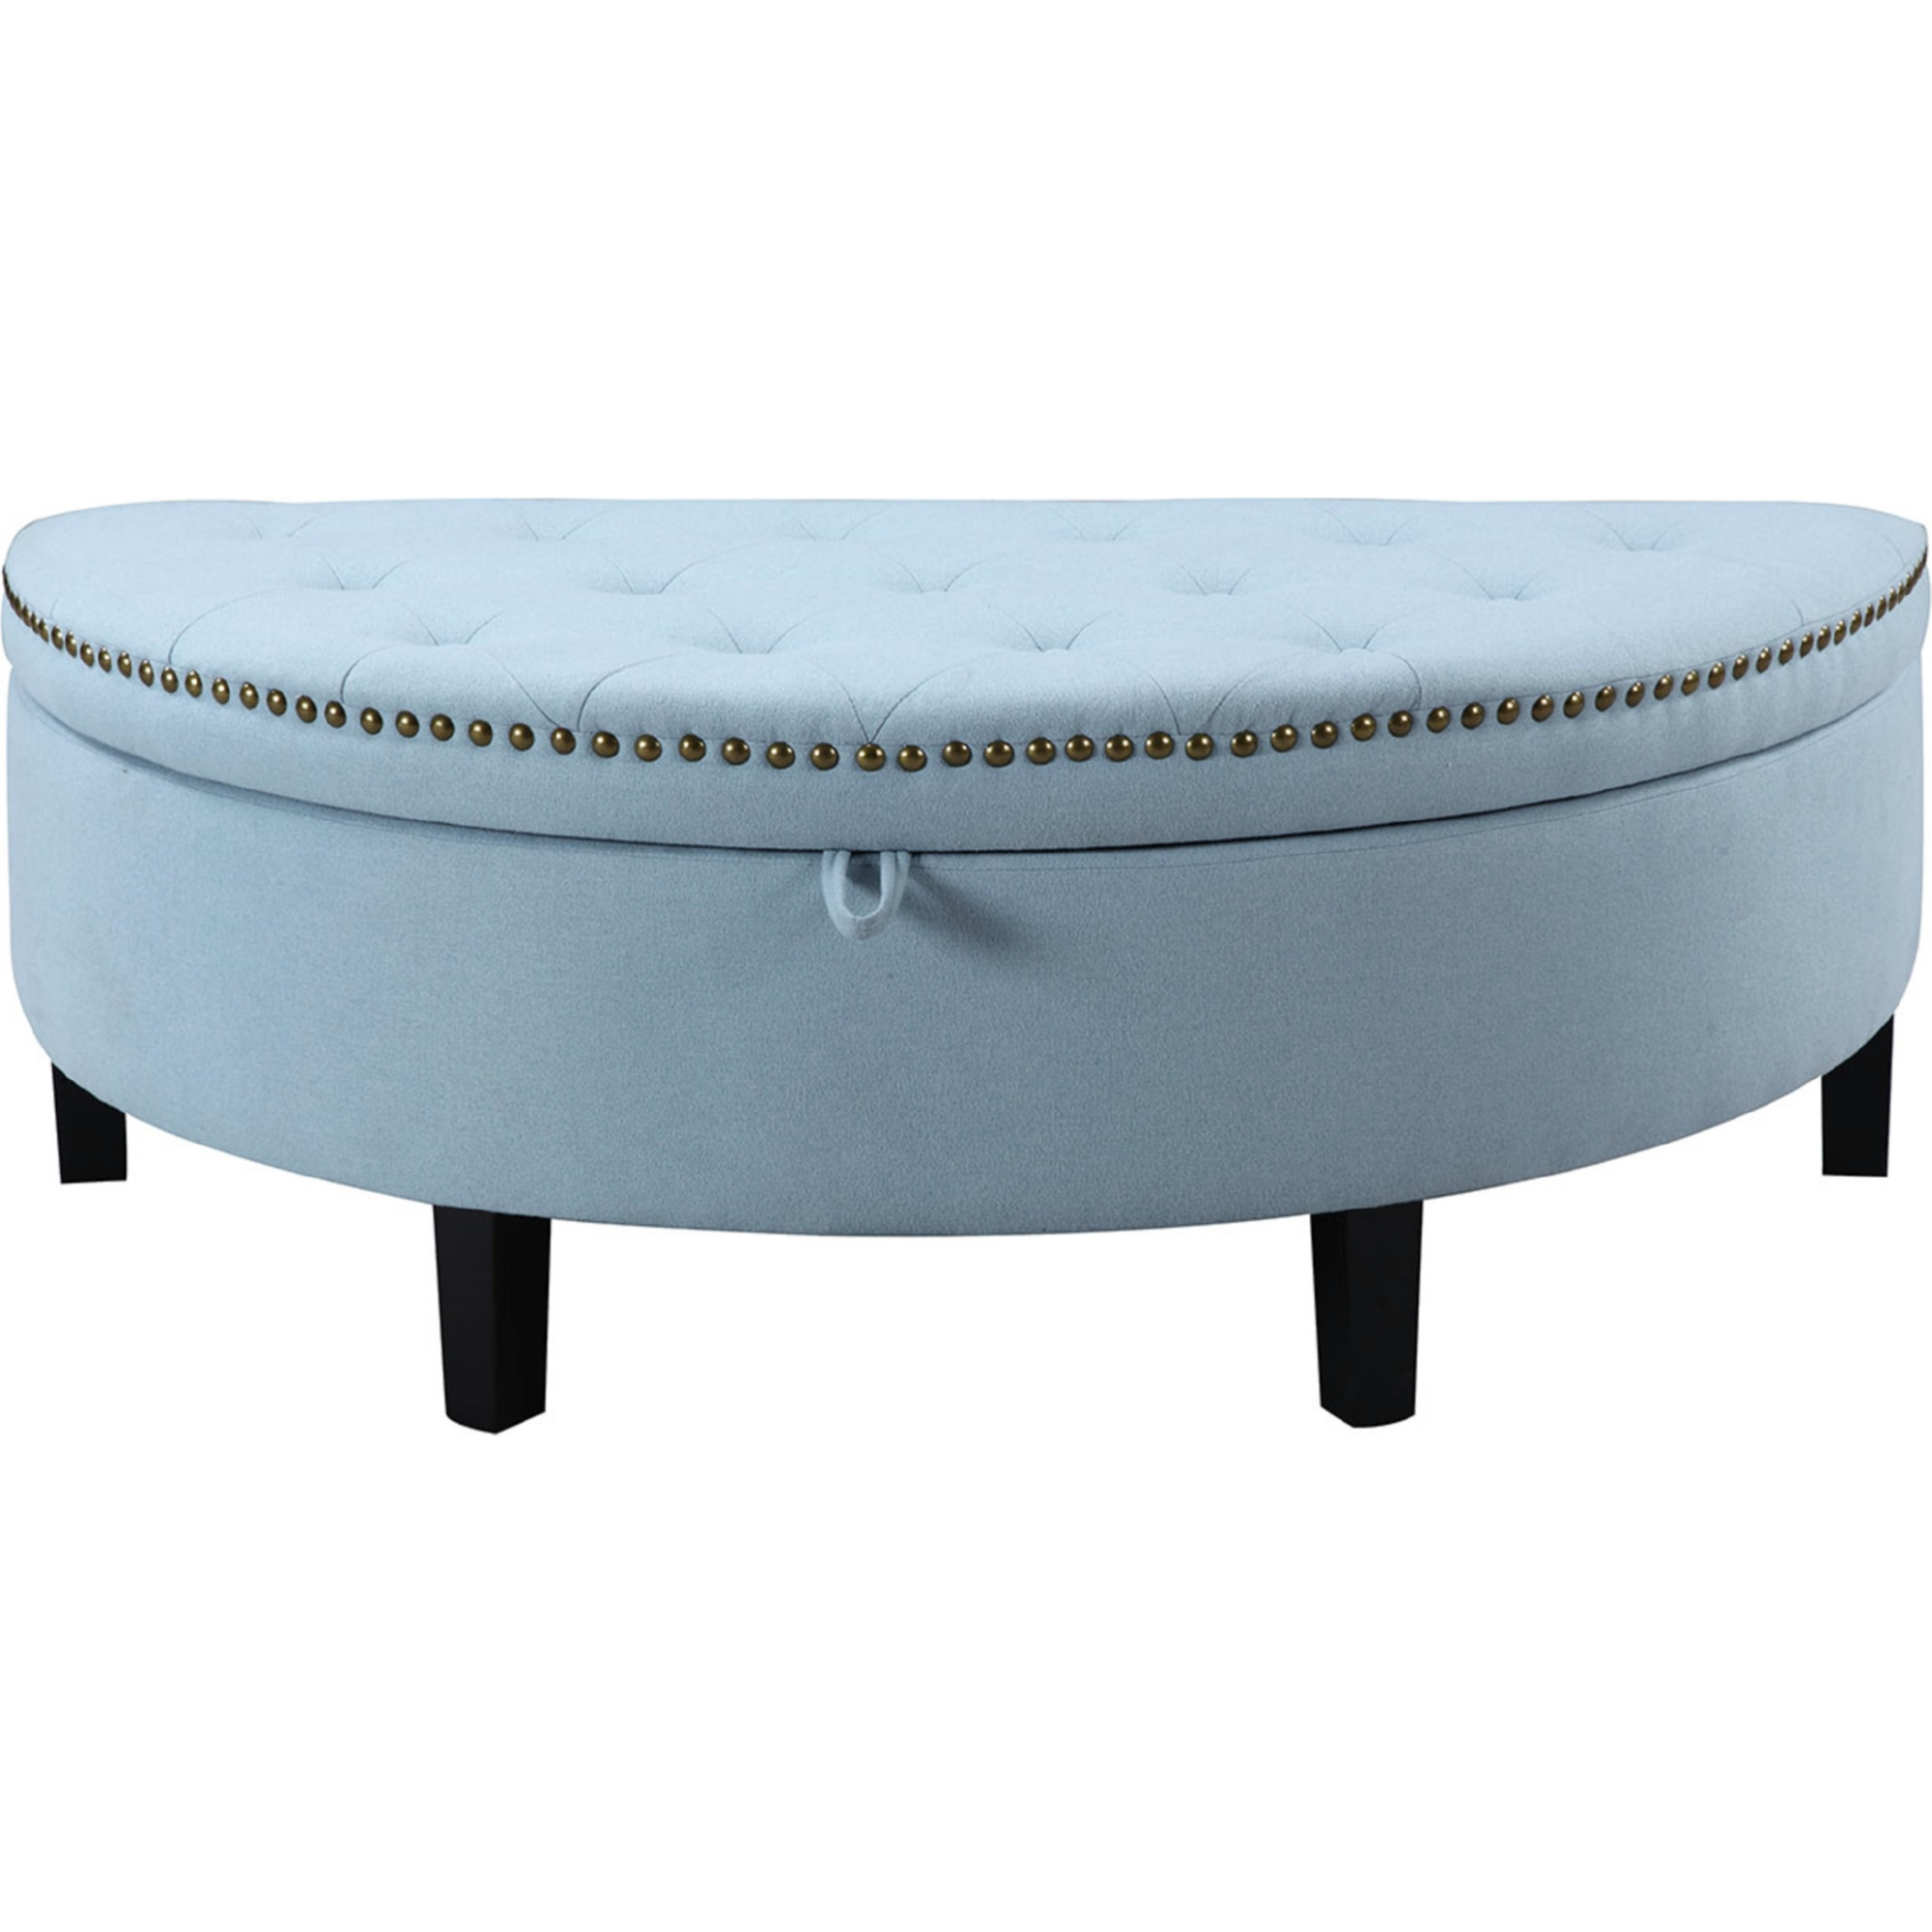 Astounding Jacqueline Half Moon Storage Ottoman In Tufted Blue Linen W Gold Nailhead By Chic Home Andrewgaddart Wooden Chair Designs For Living Room Andrewgaddartcom